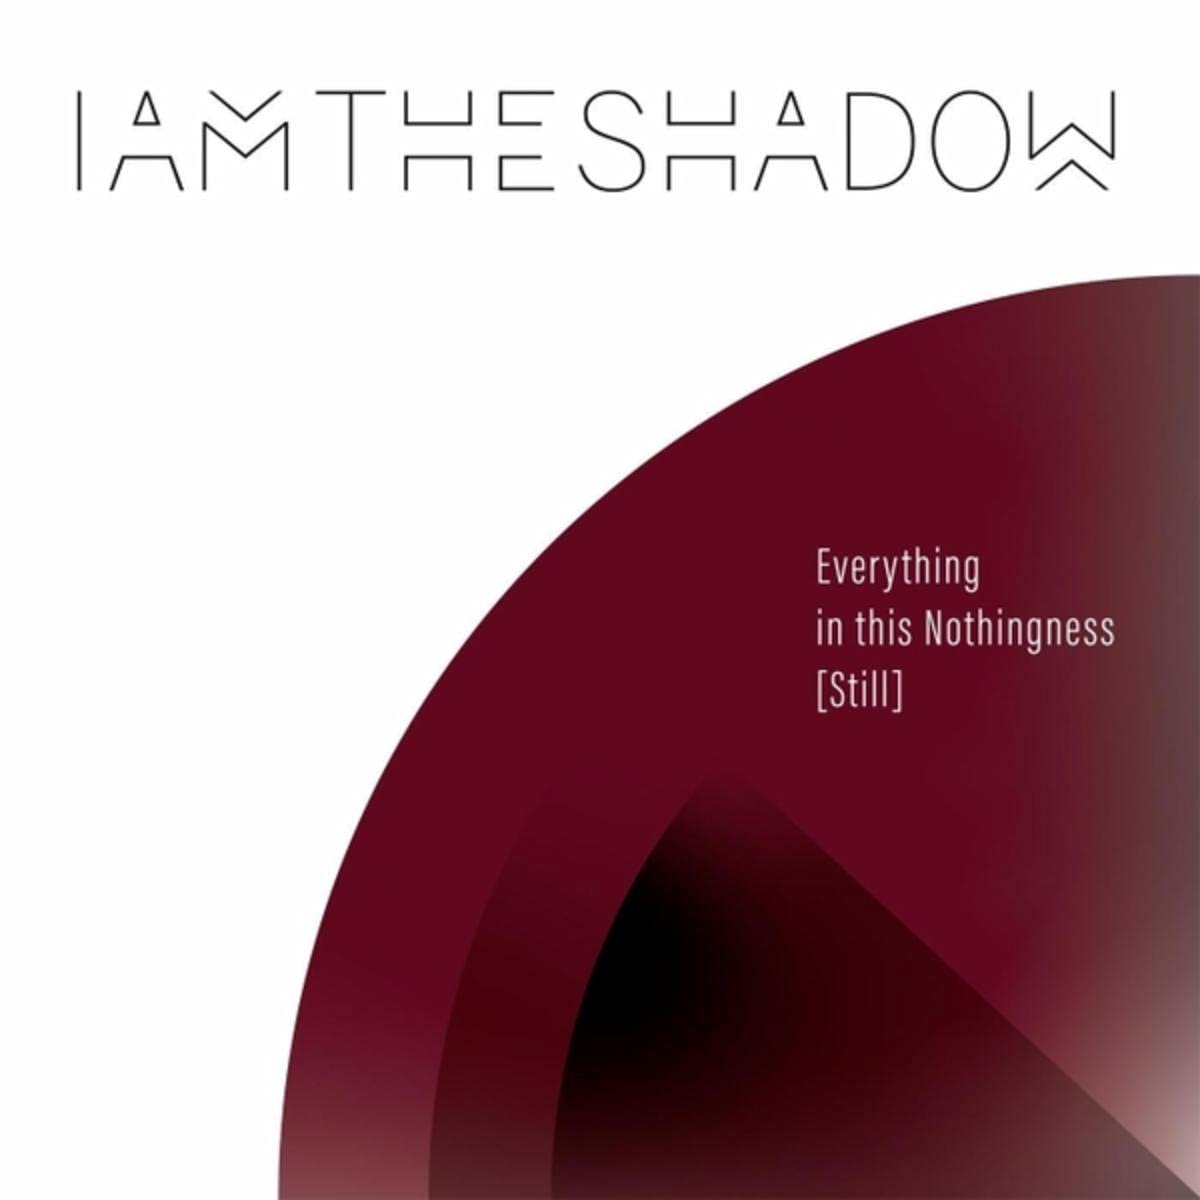 IAMTHESHADOW – Everything In This Nothingness (Still) (2021) [FLAC]